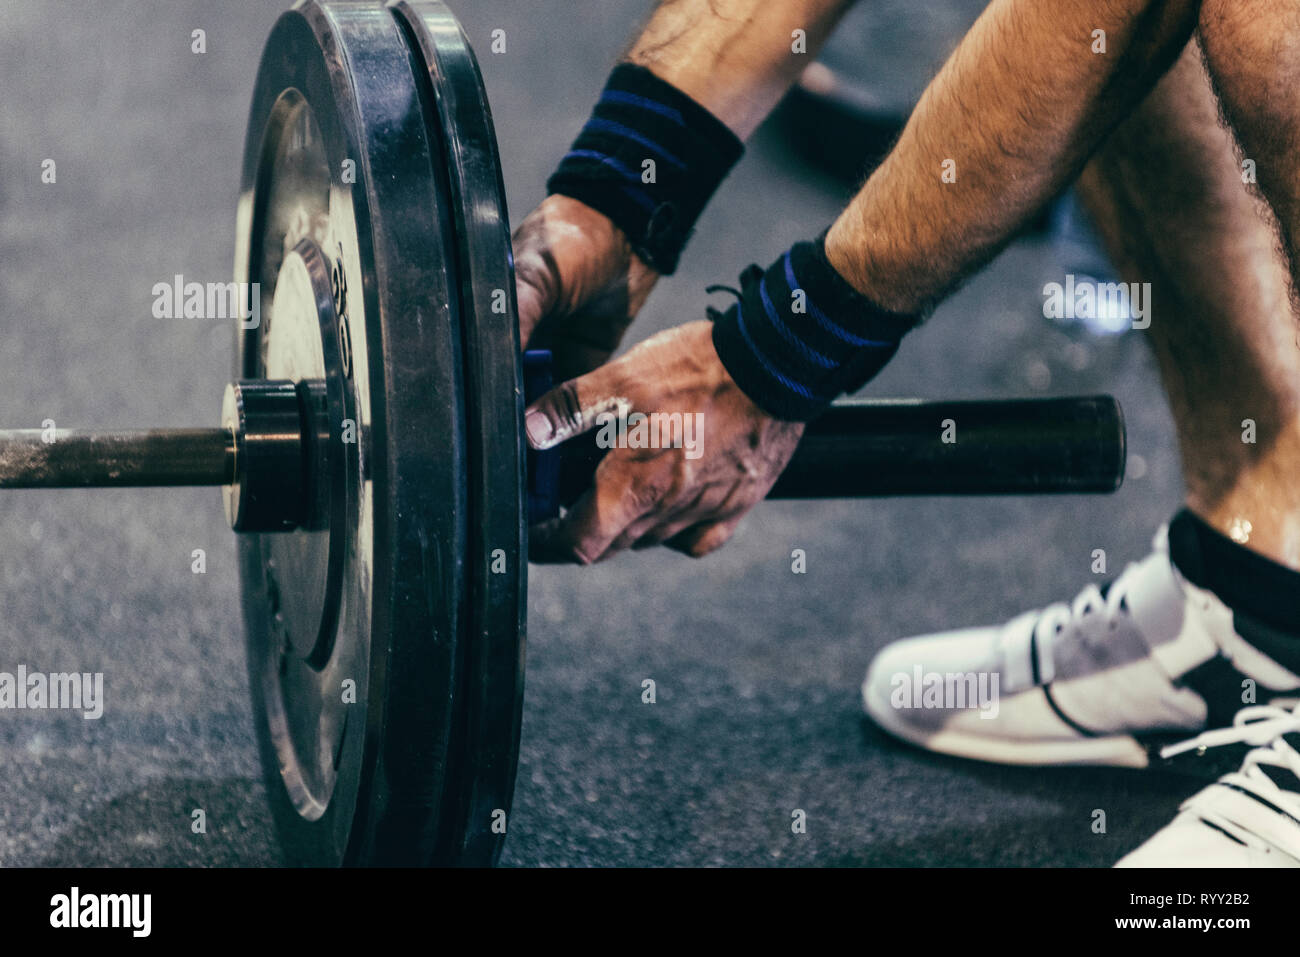 Changing weights on barbell. - Stock Image